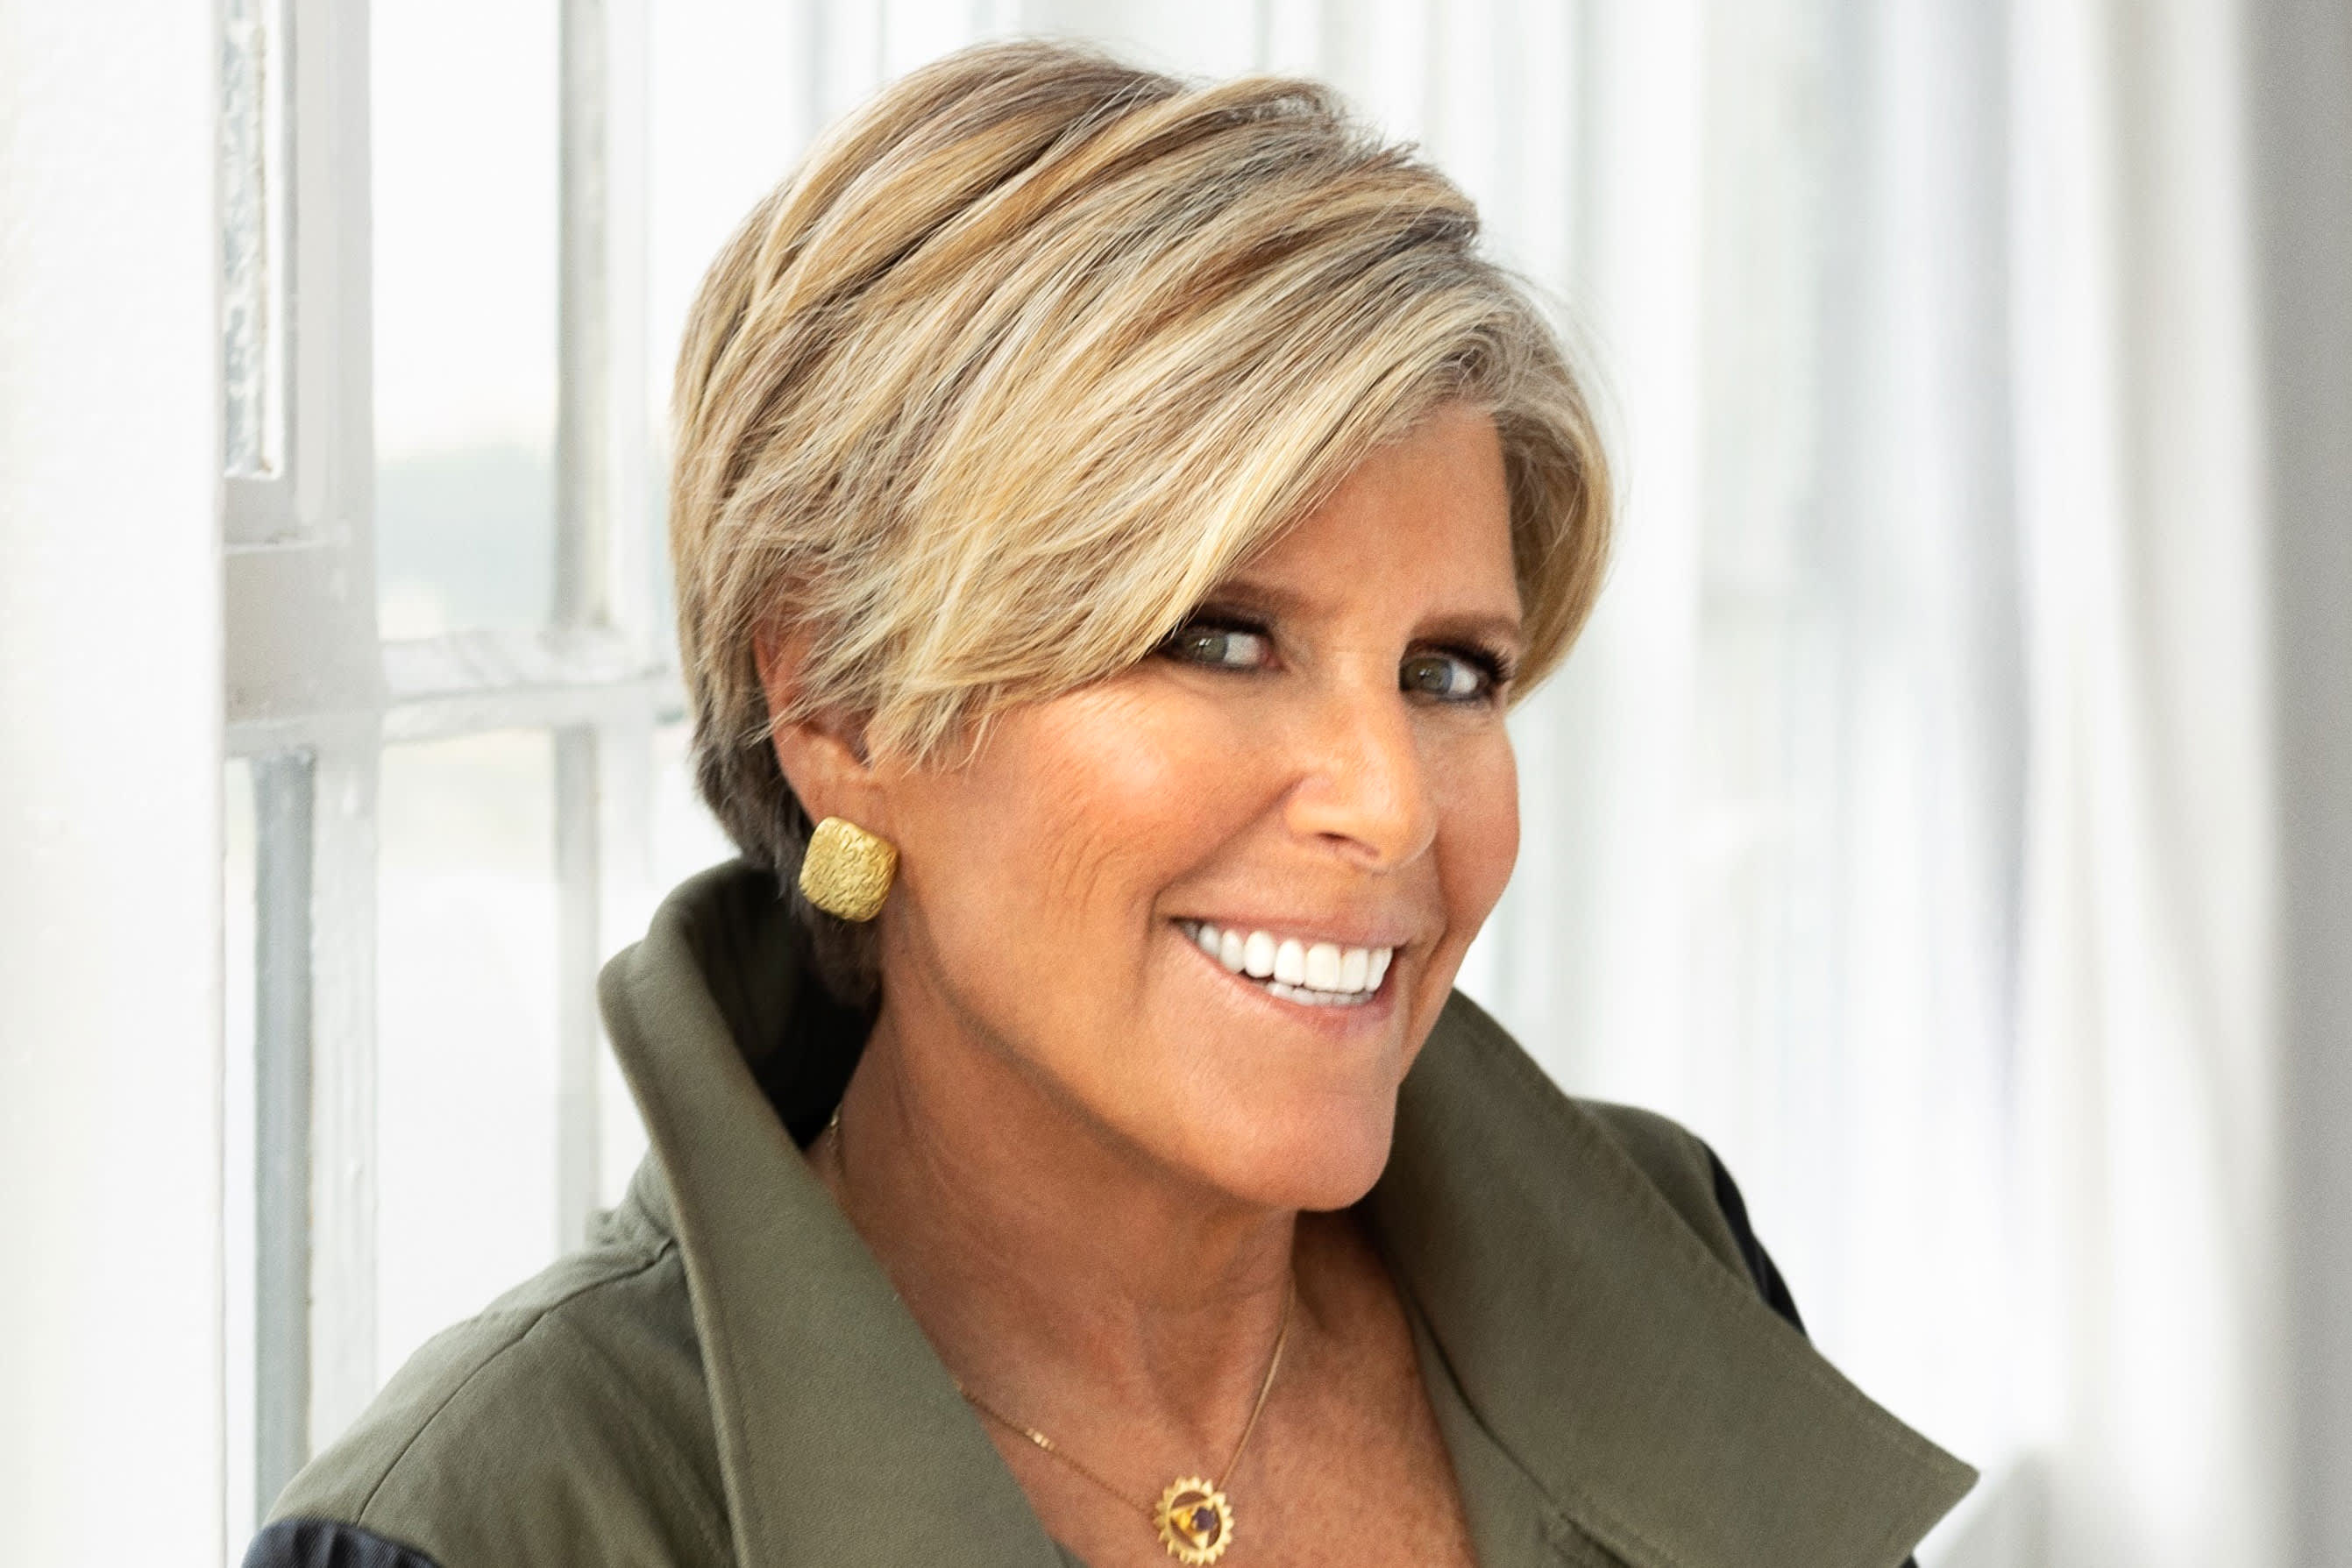 Suze Orman: 'Use your credit cards' and 'only pay the minimum': Here's what to prioritize over debt